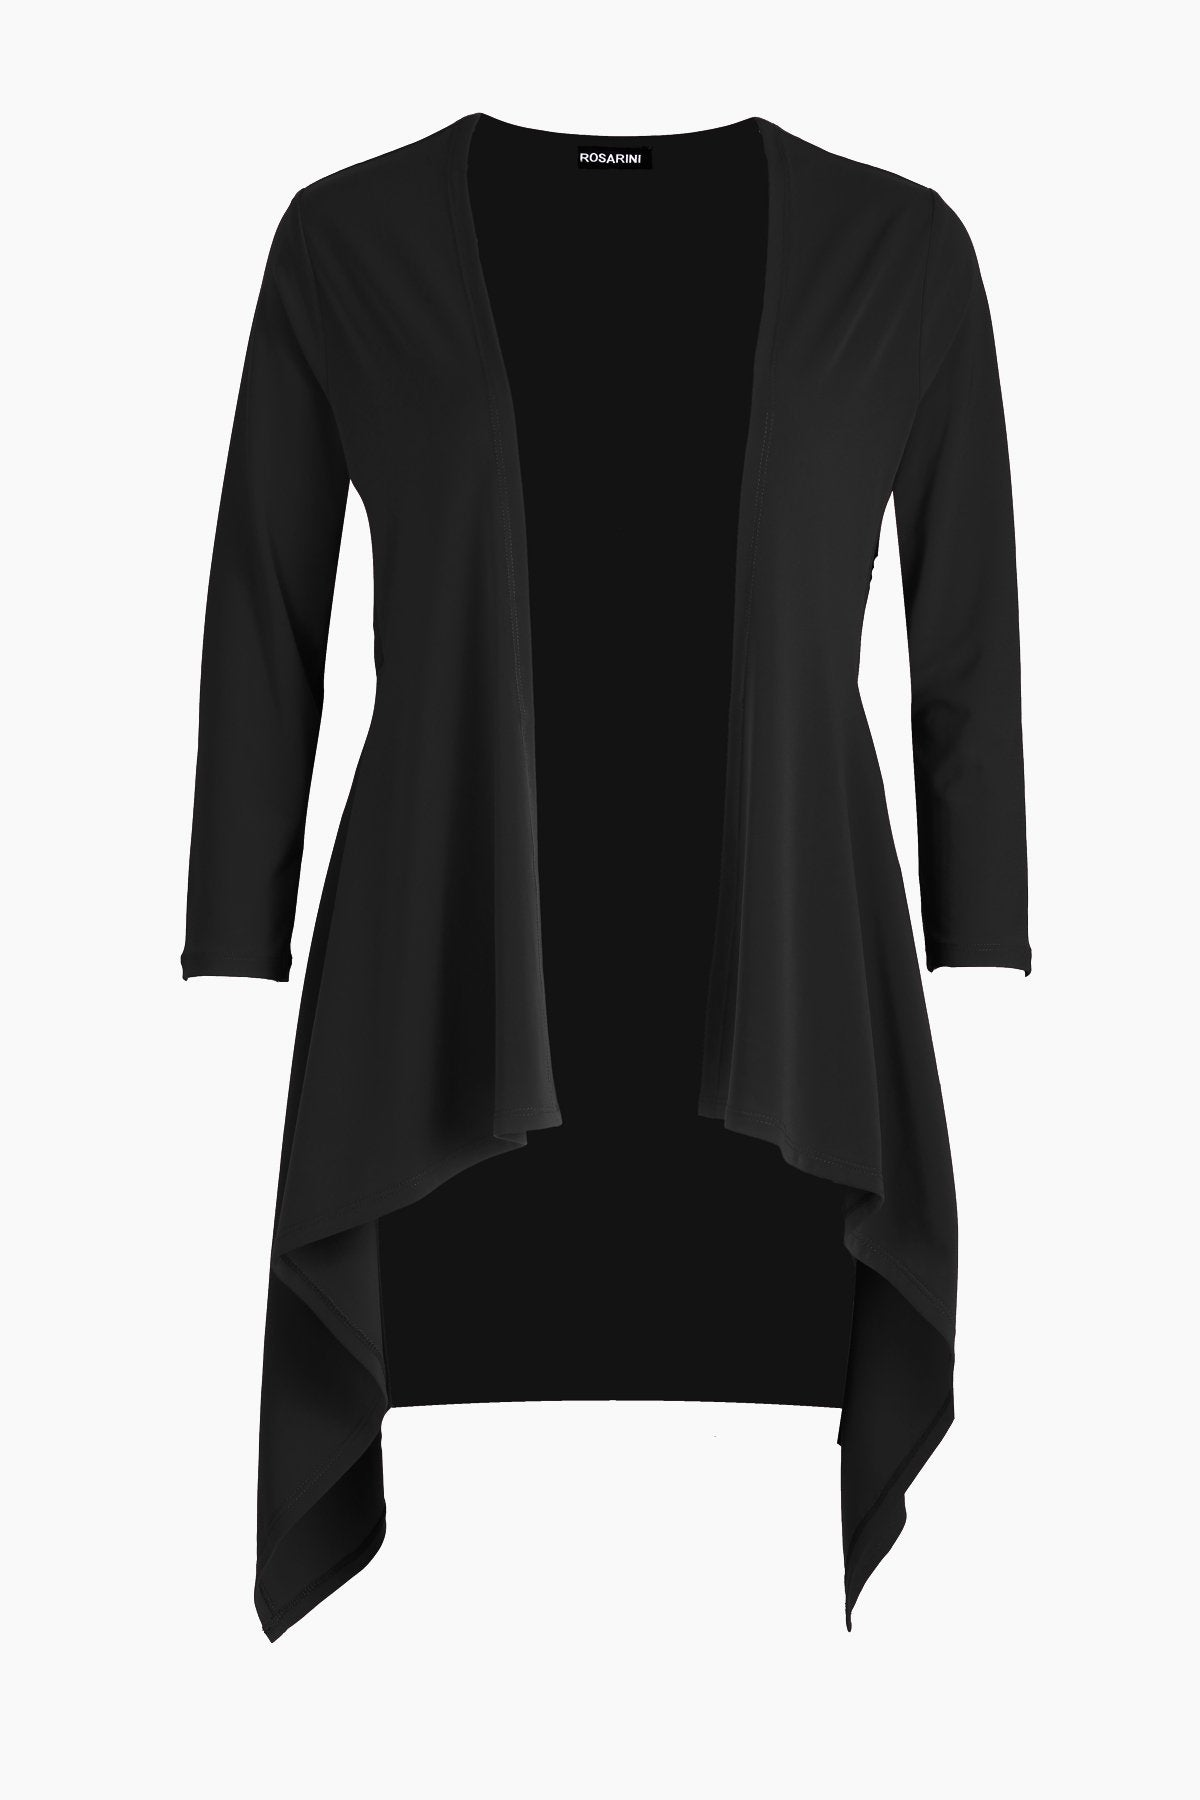 PLUS SIZE Long Flyaway Cardigan black